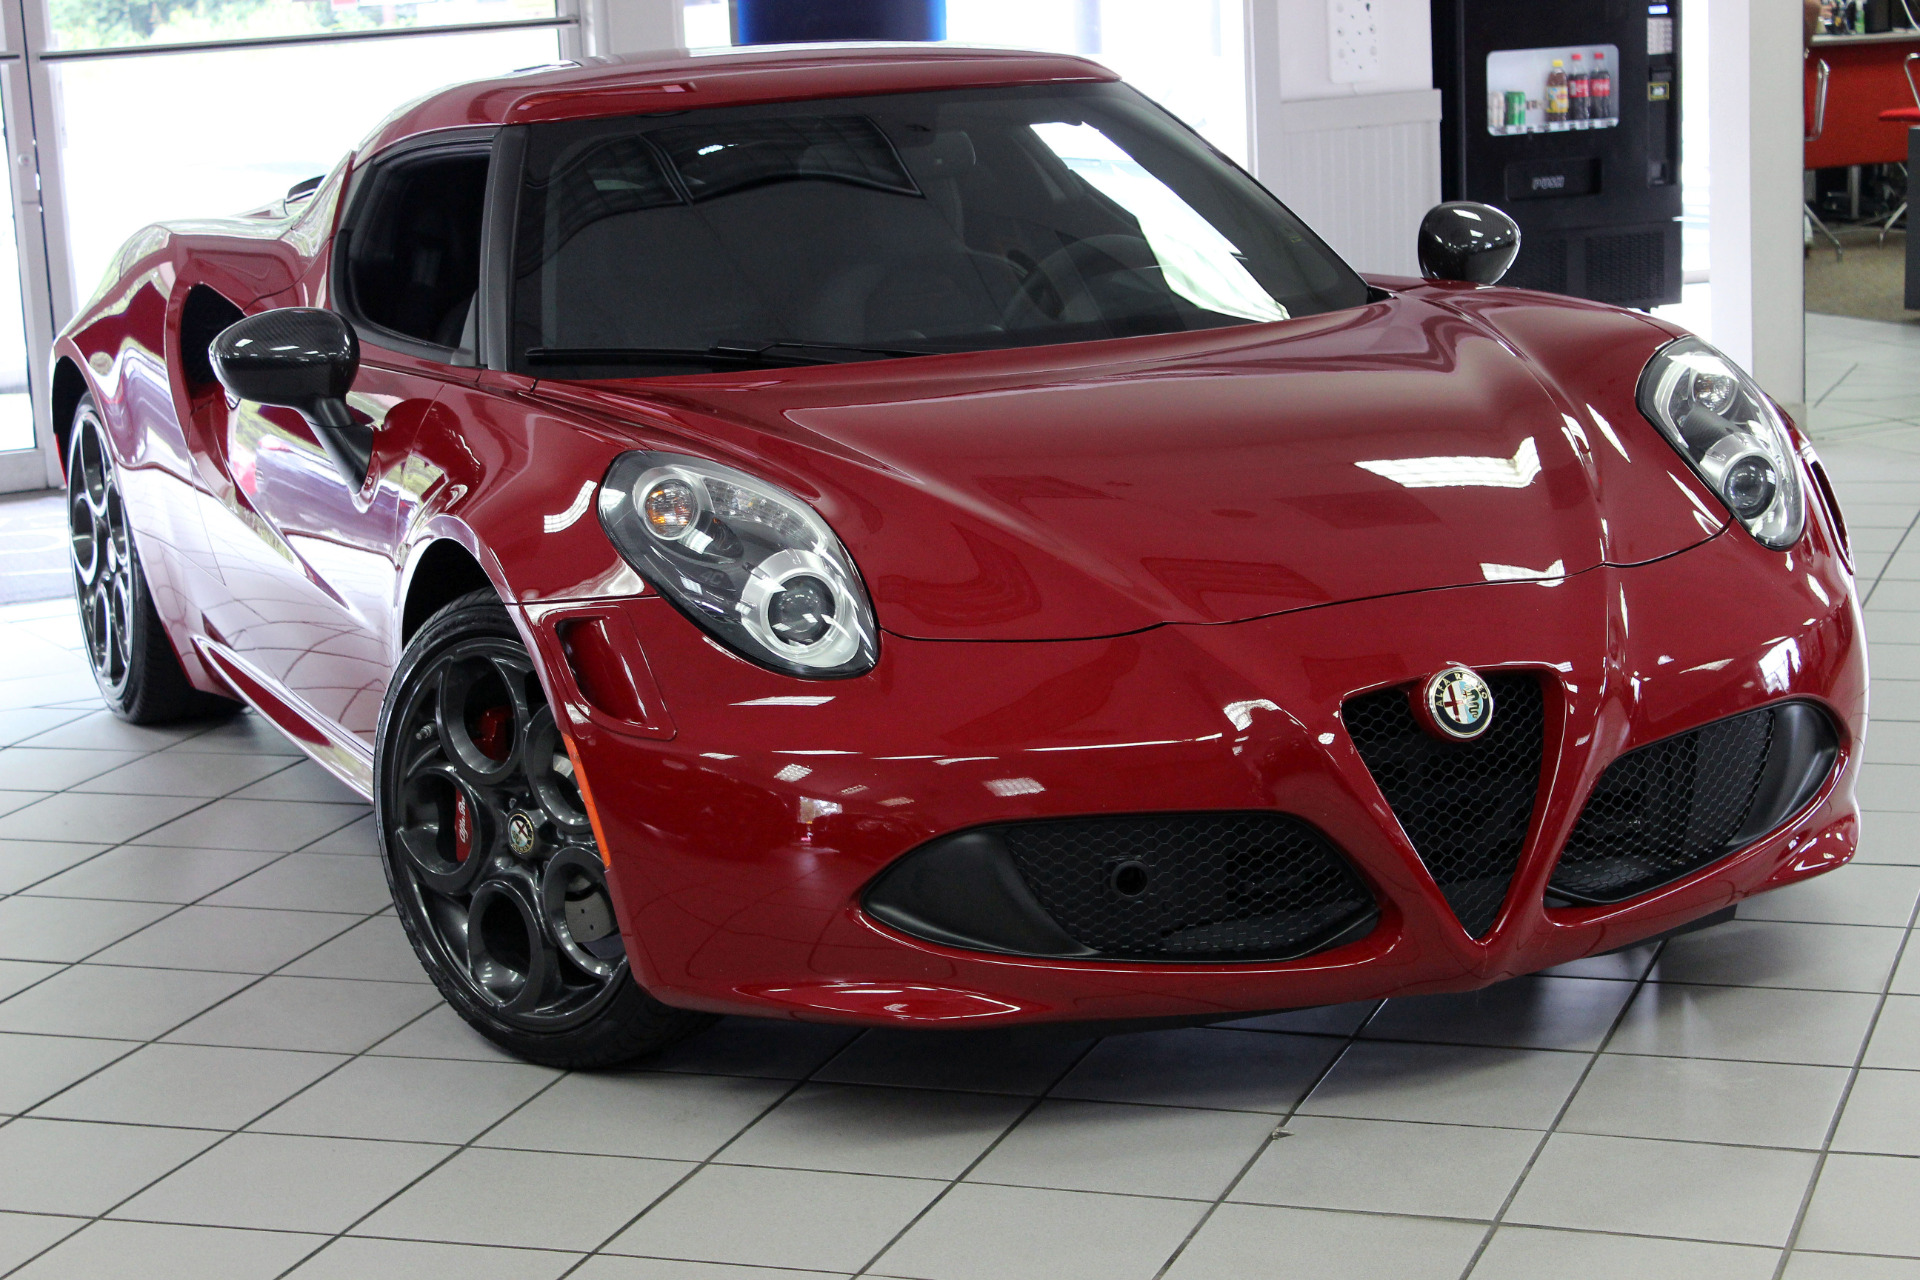 used 2015 alfa romeo 4c launch edition marietta ga. Black Bedroom Furniture Sets. Home Design Ideas